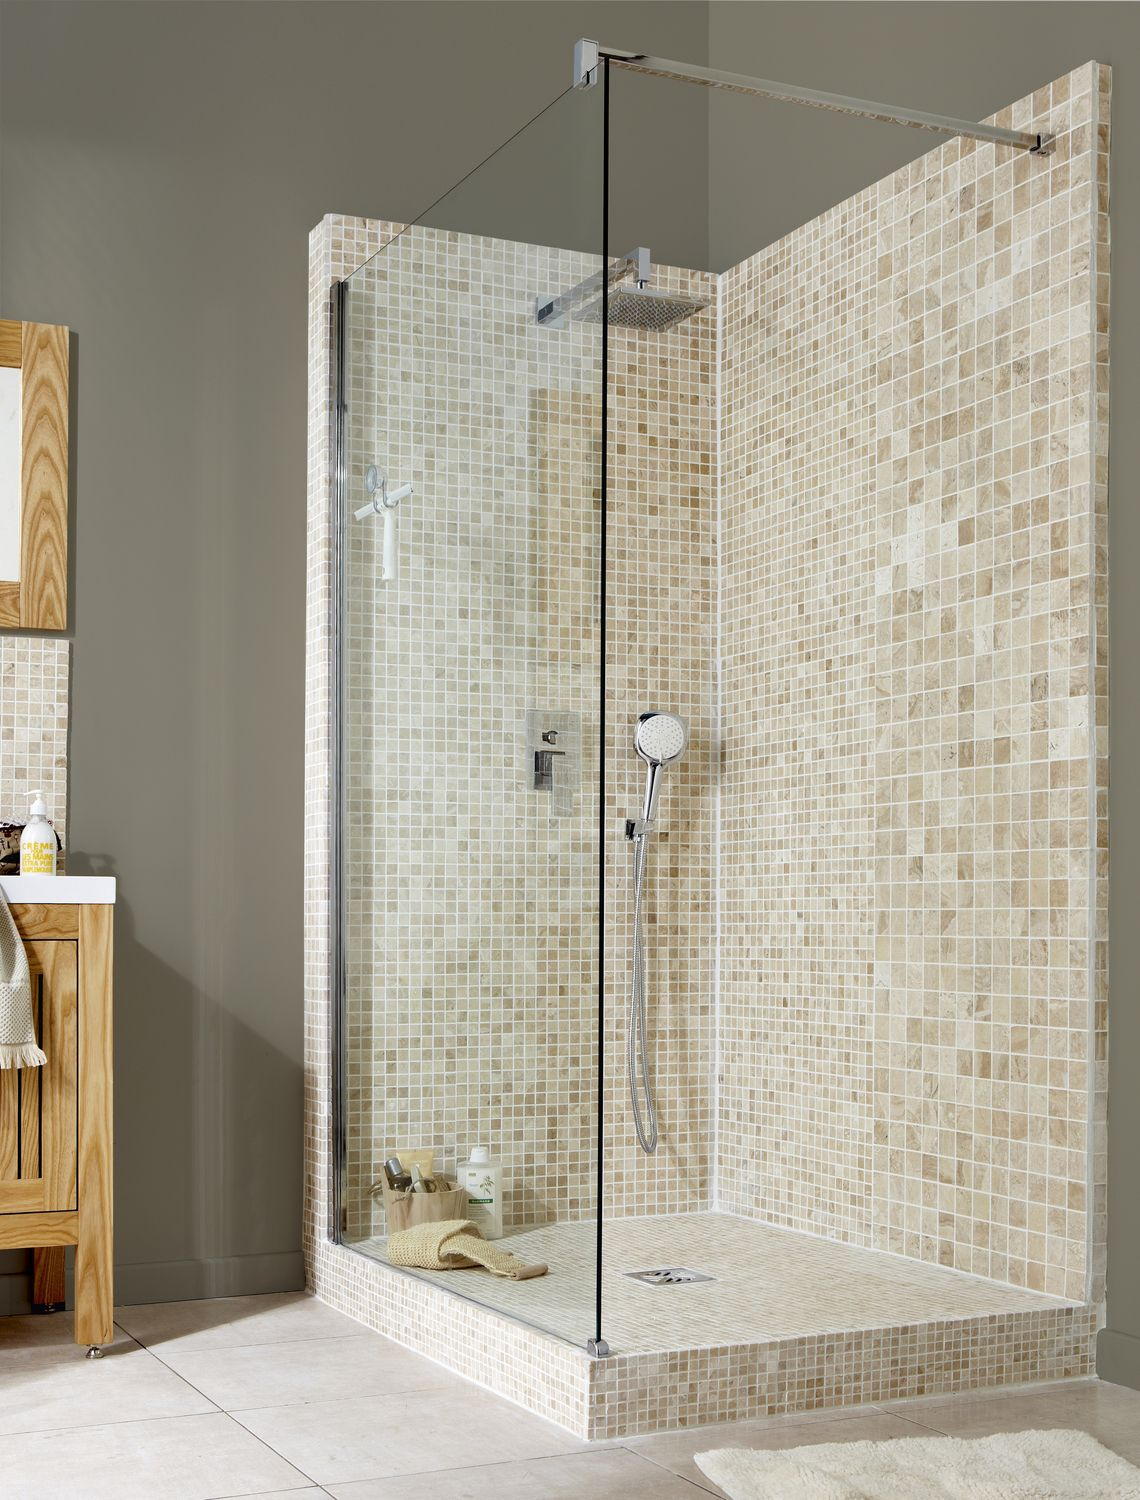 Salle De Douche Italienne Page Leroy Merlin Pour Douche à L Italienne Bathrooms To Die For